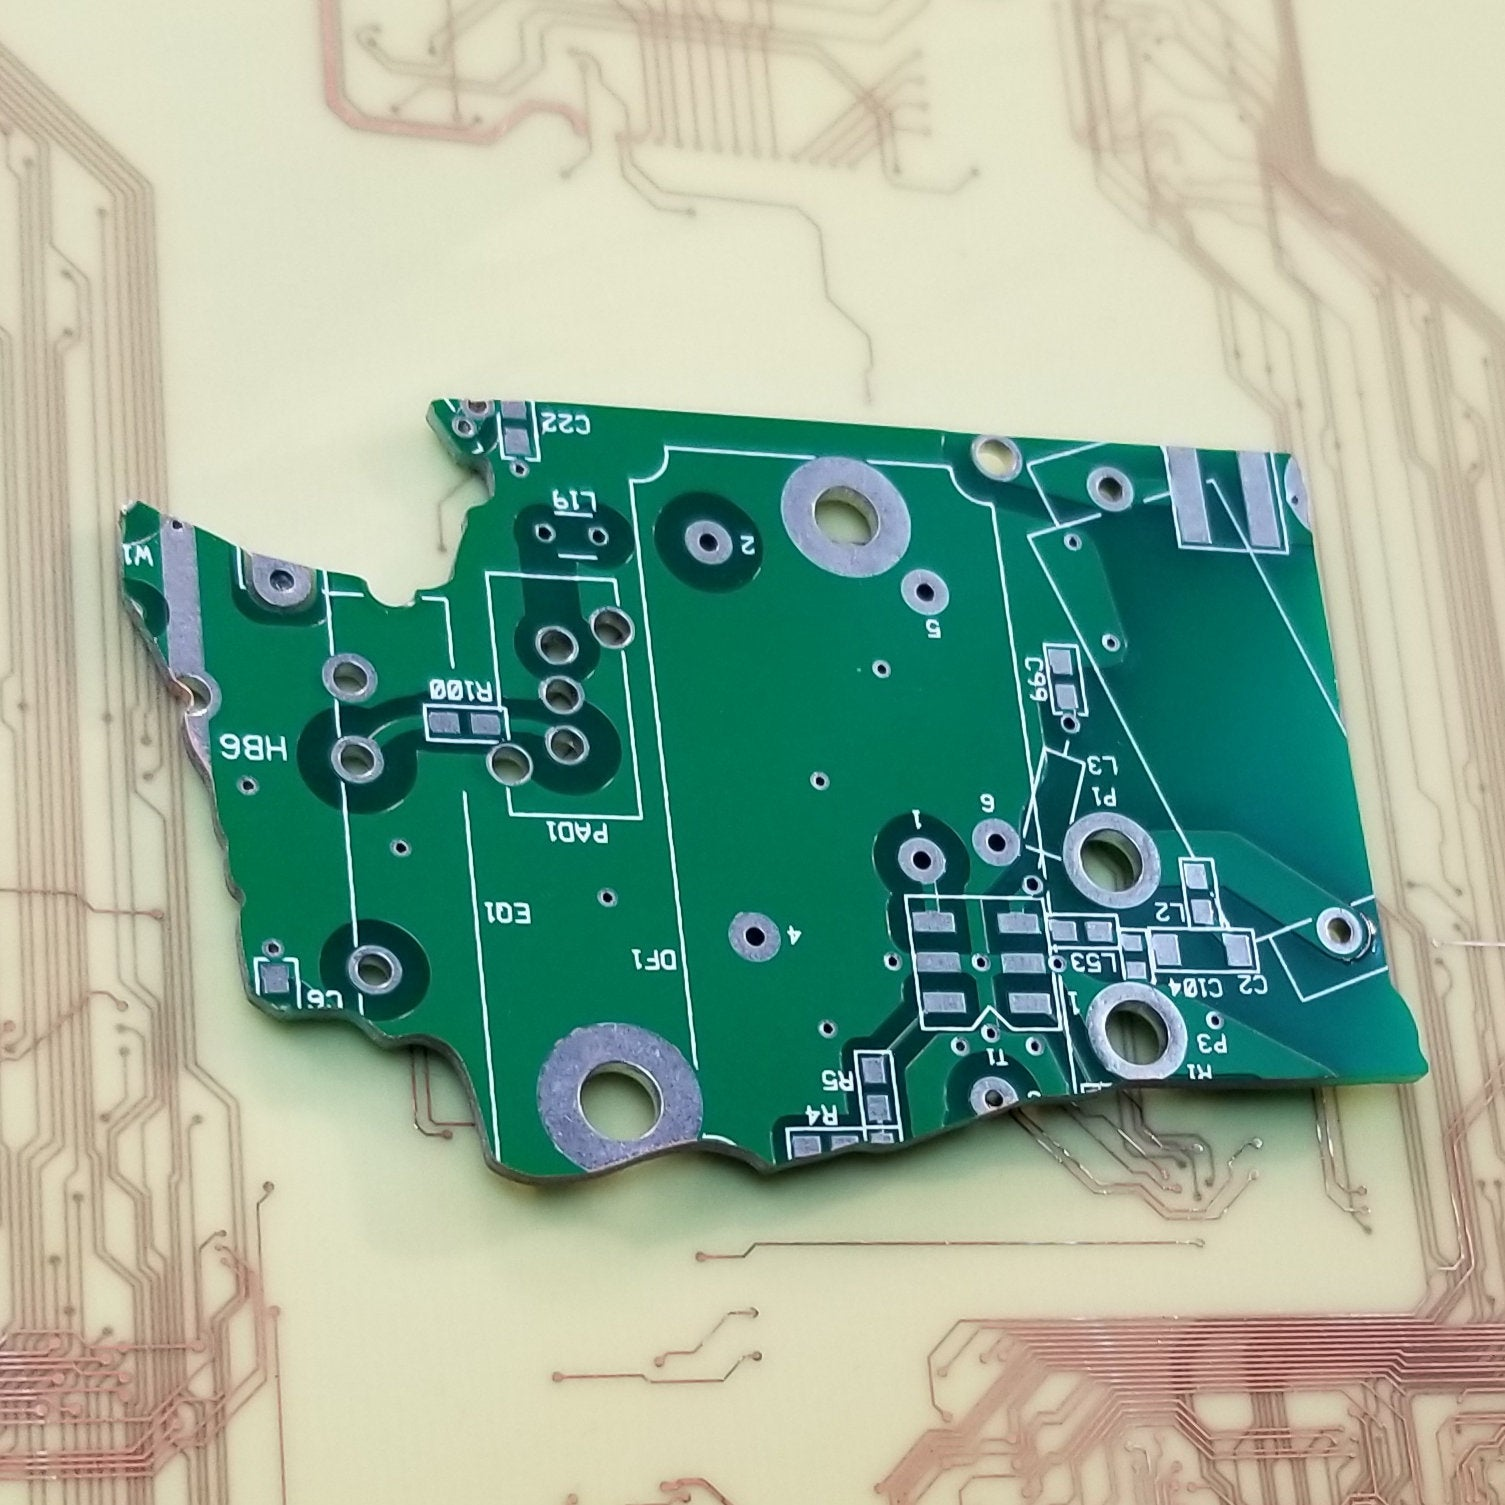 Circuit Board Washington - TechWears Ltd